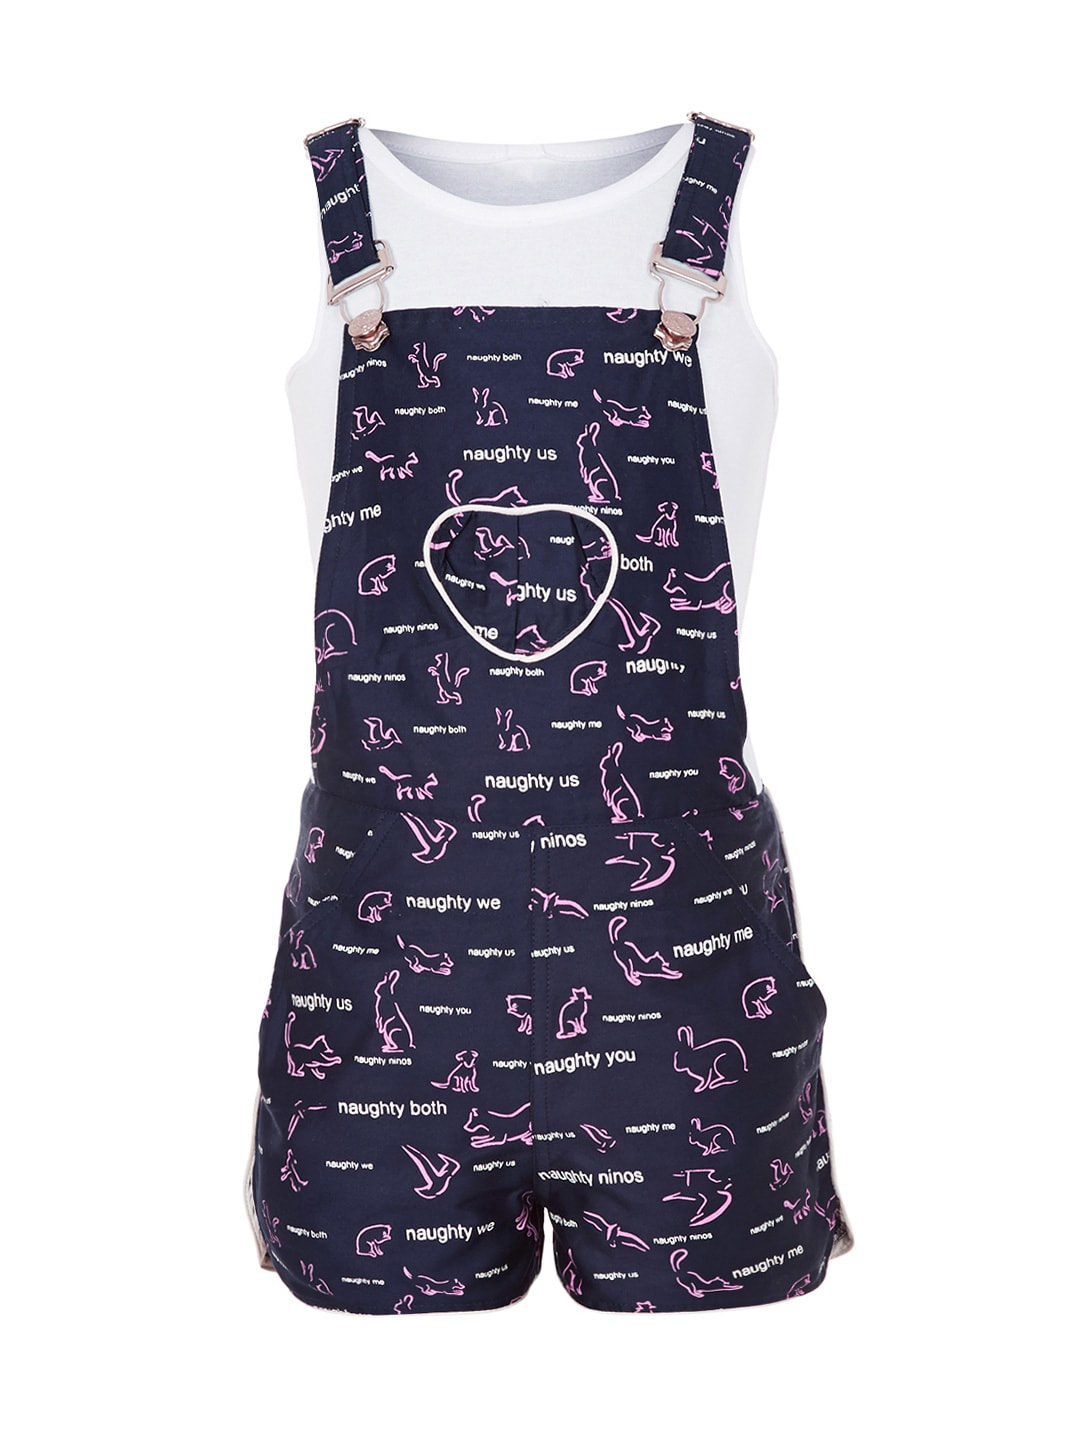 574f4ce70464 Dungarees - Buy Dungarees Dress for Women Online - Myntra